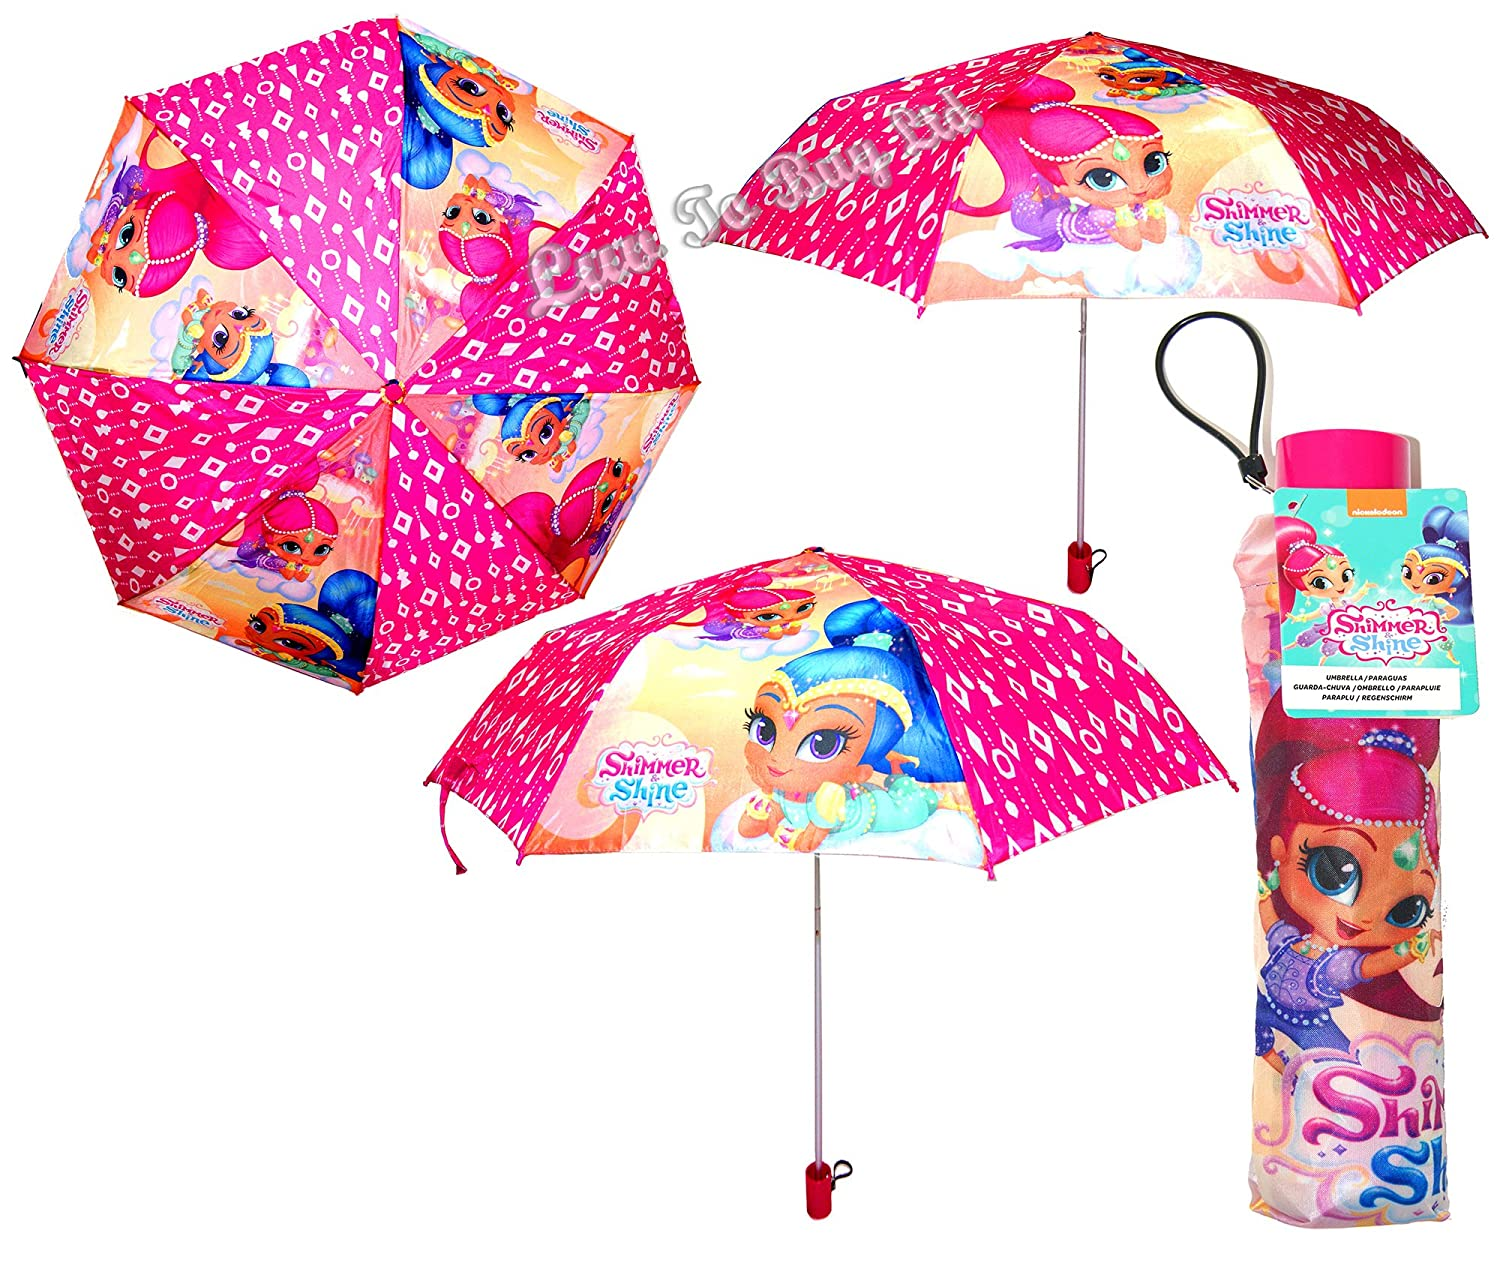 Amazon.com | Umbrella, Shimmer & Shine Extendable Umbrella, Kids Umbrella, Officially Licensed | Umbrellas